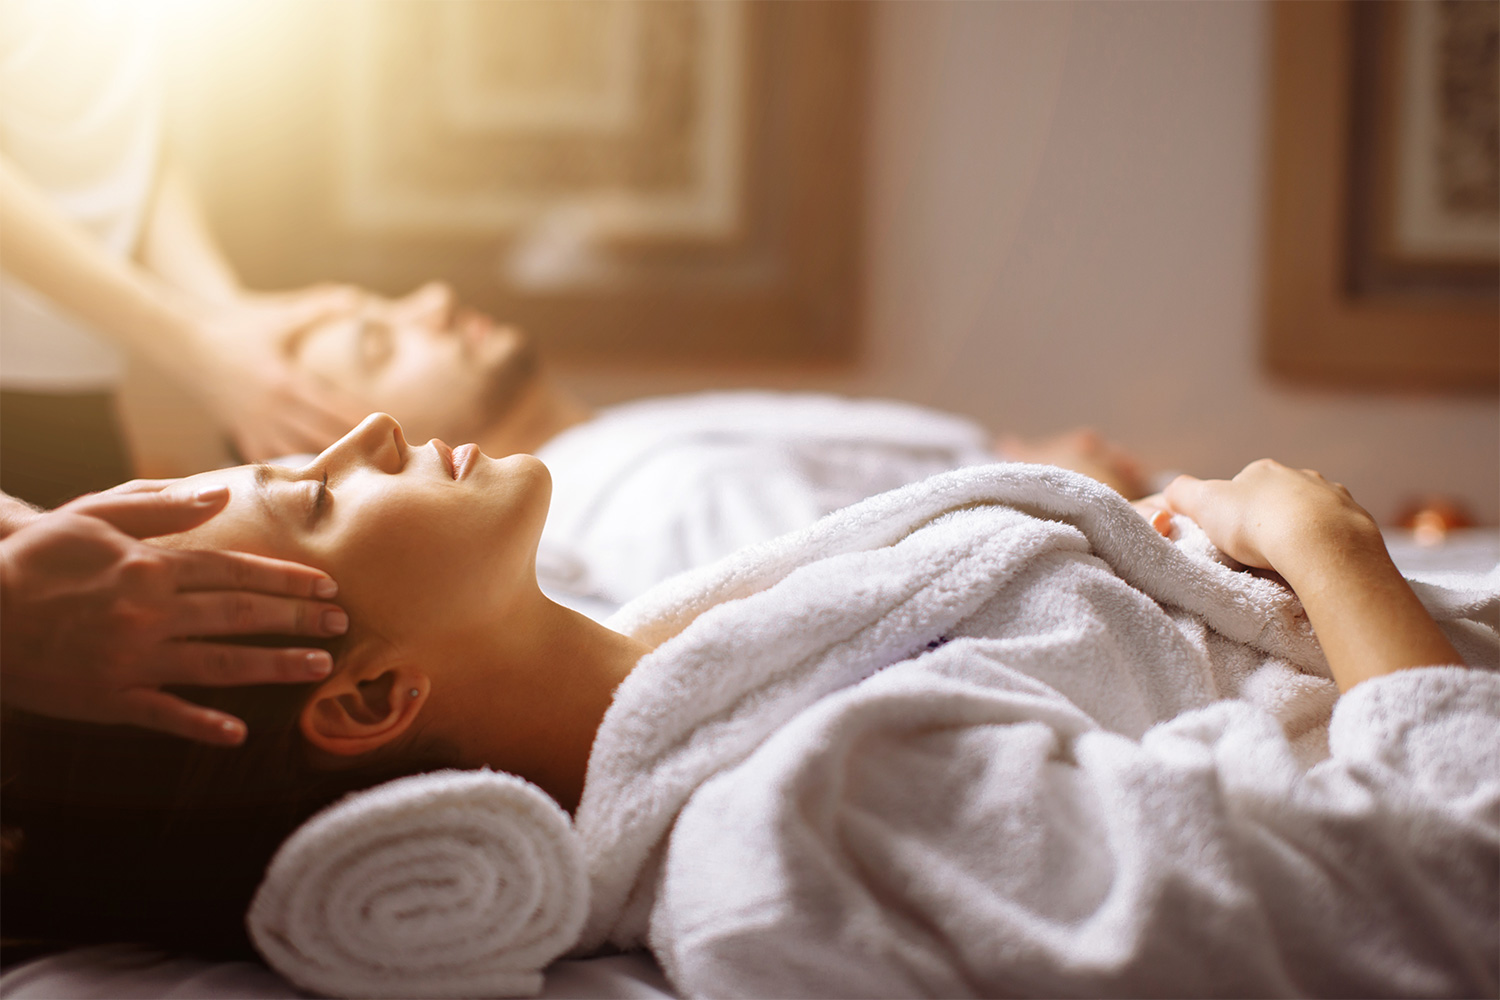 Our spa management company is keeping an eye on 2019 wellness trends